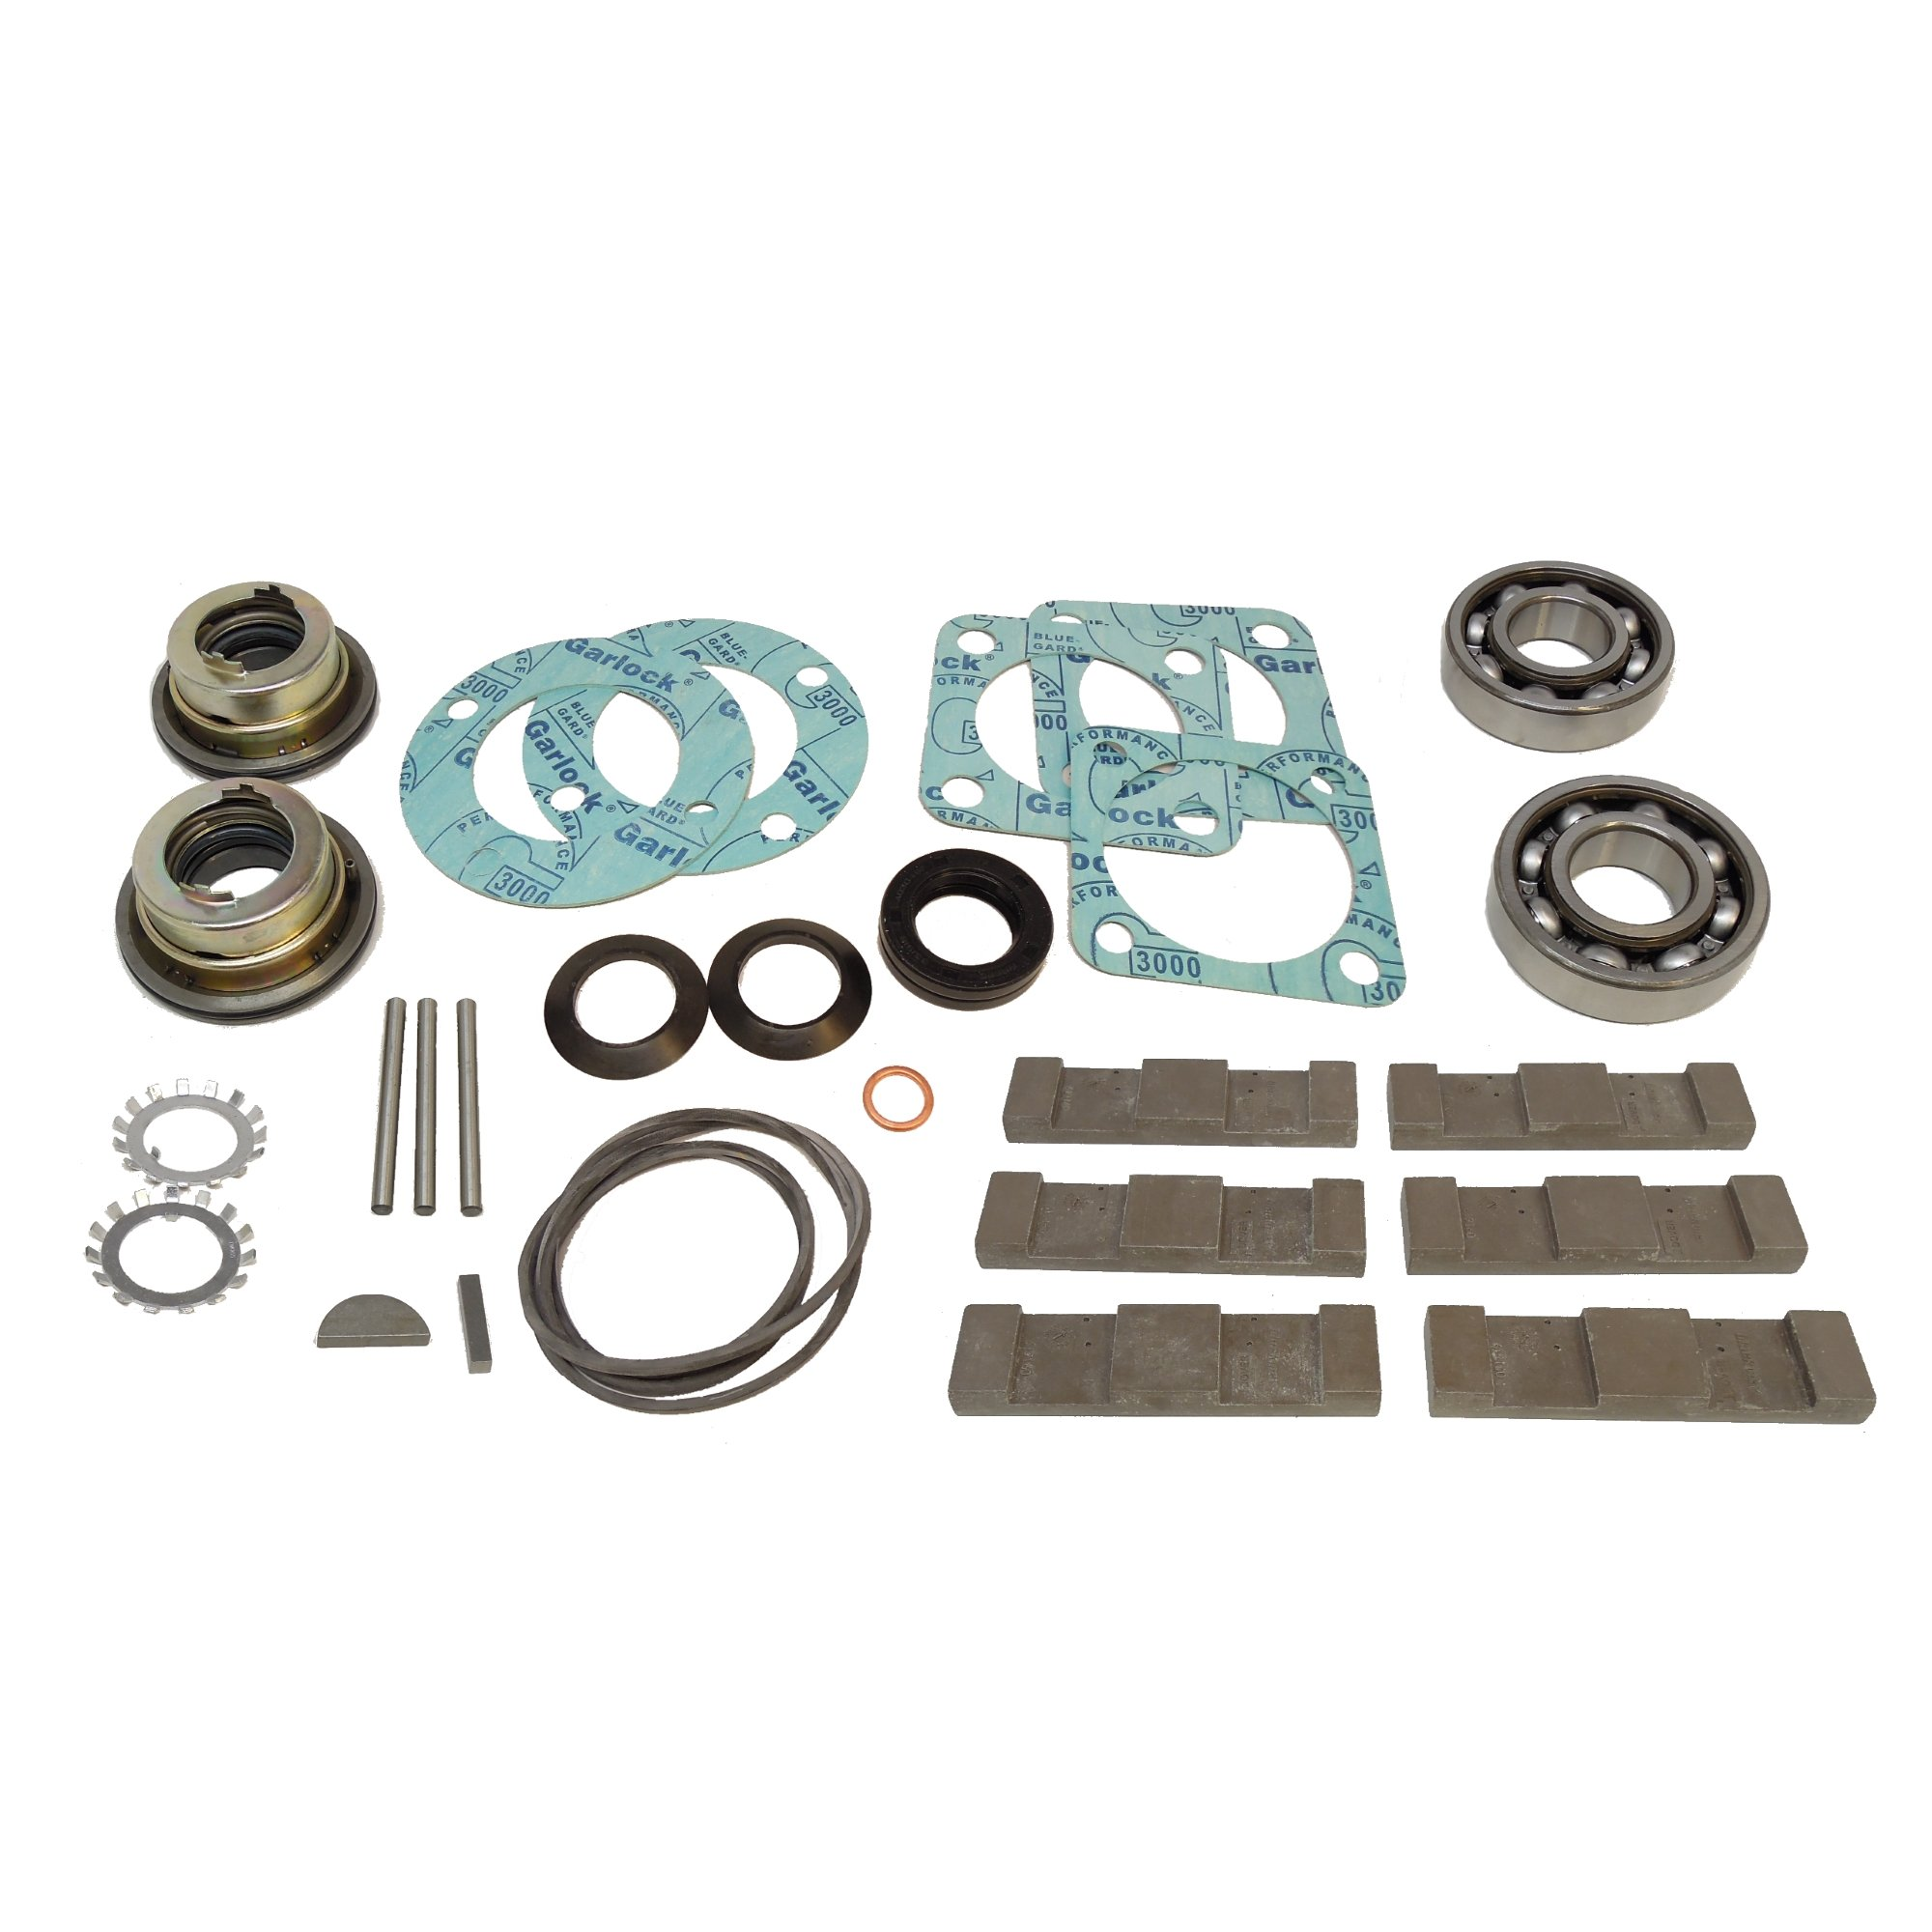 Blackmer 898951 Stainless Steel and Synthetic Main Kit TXD2.5A